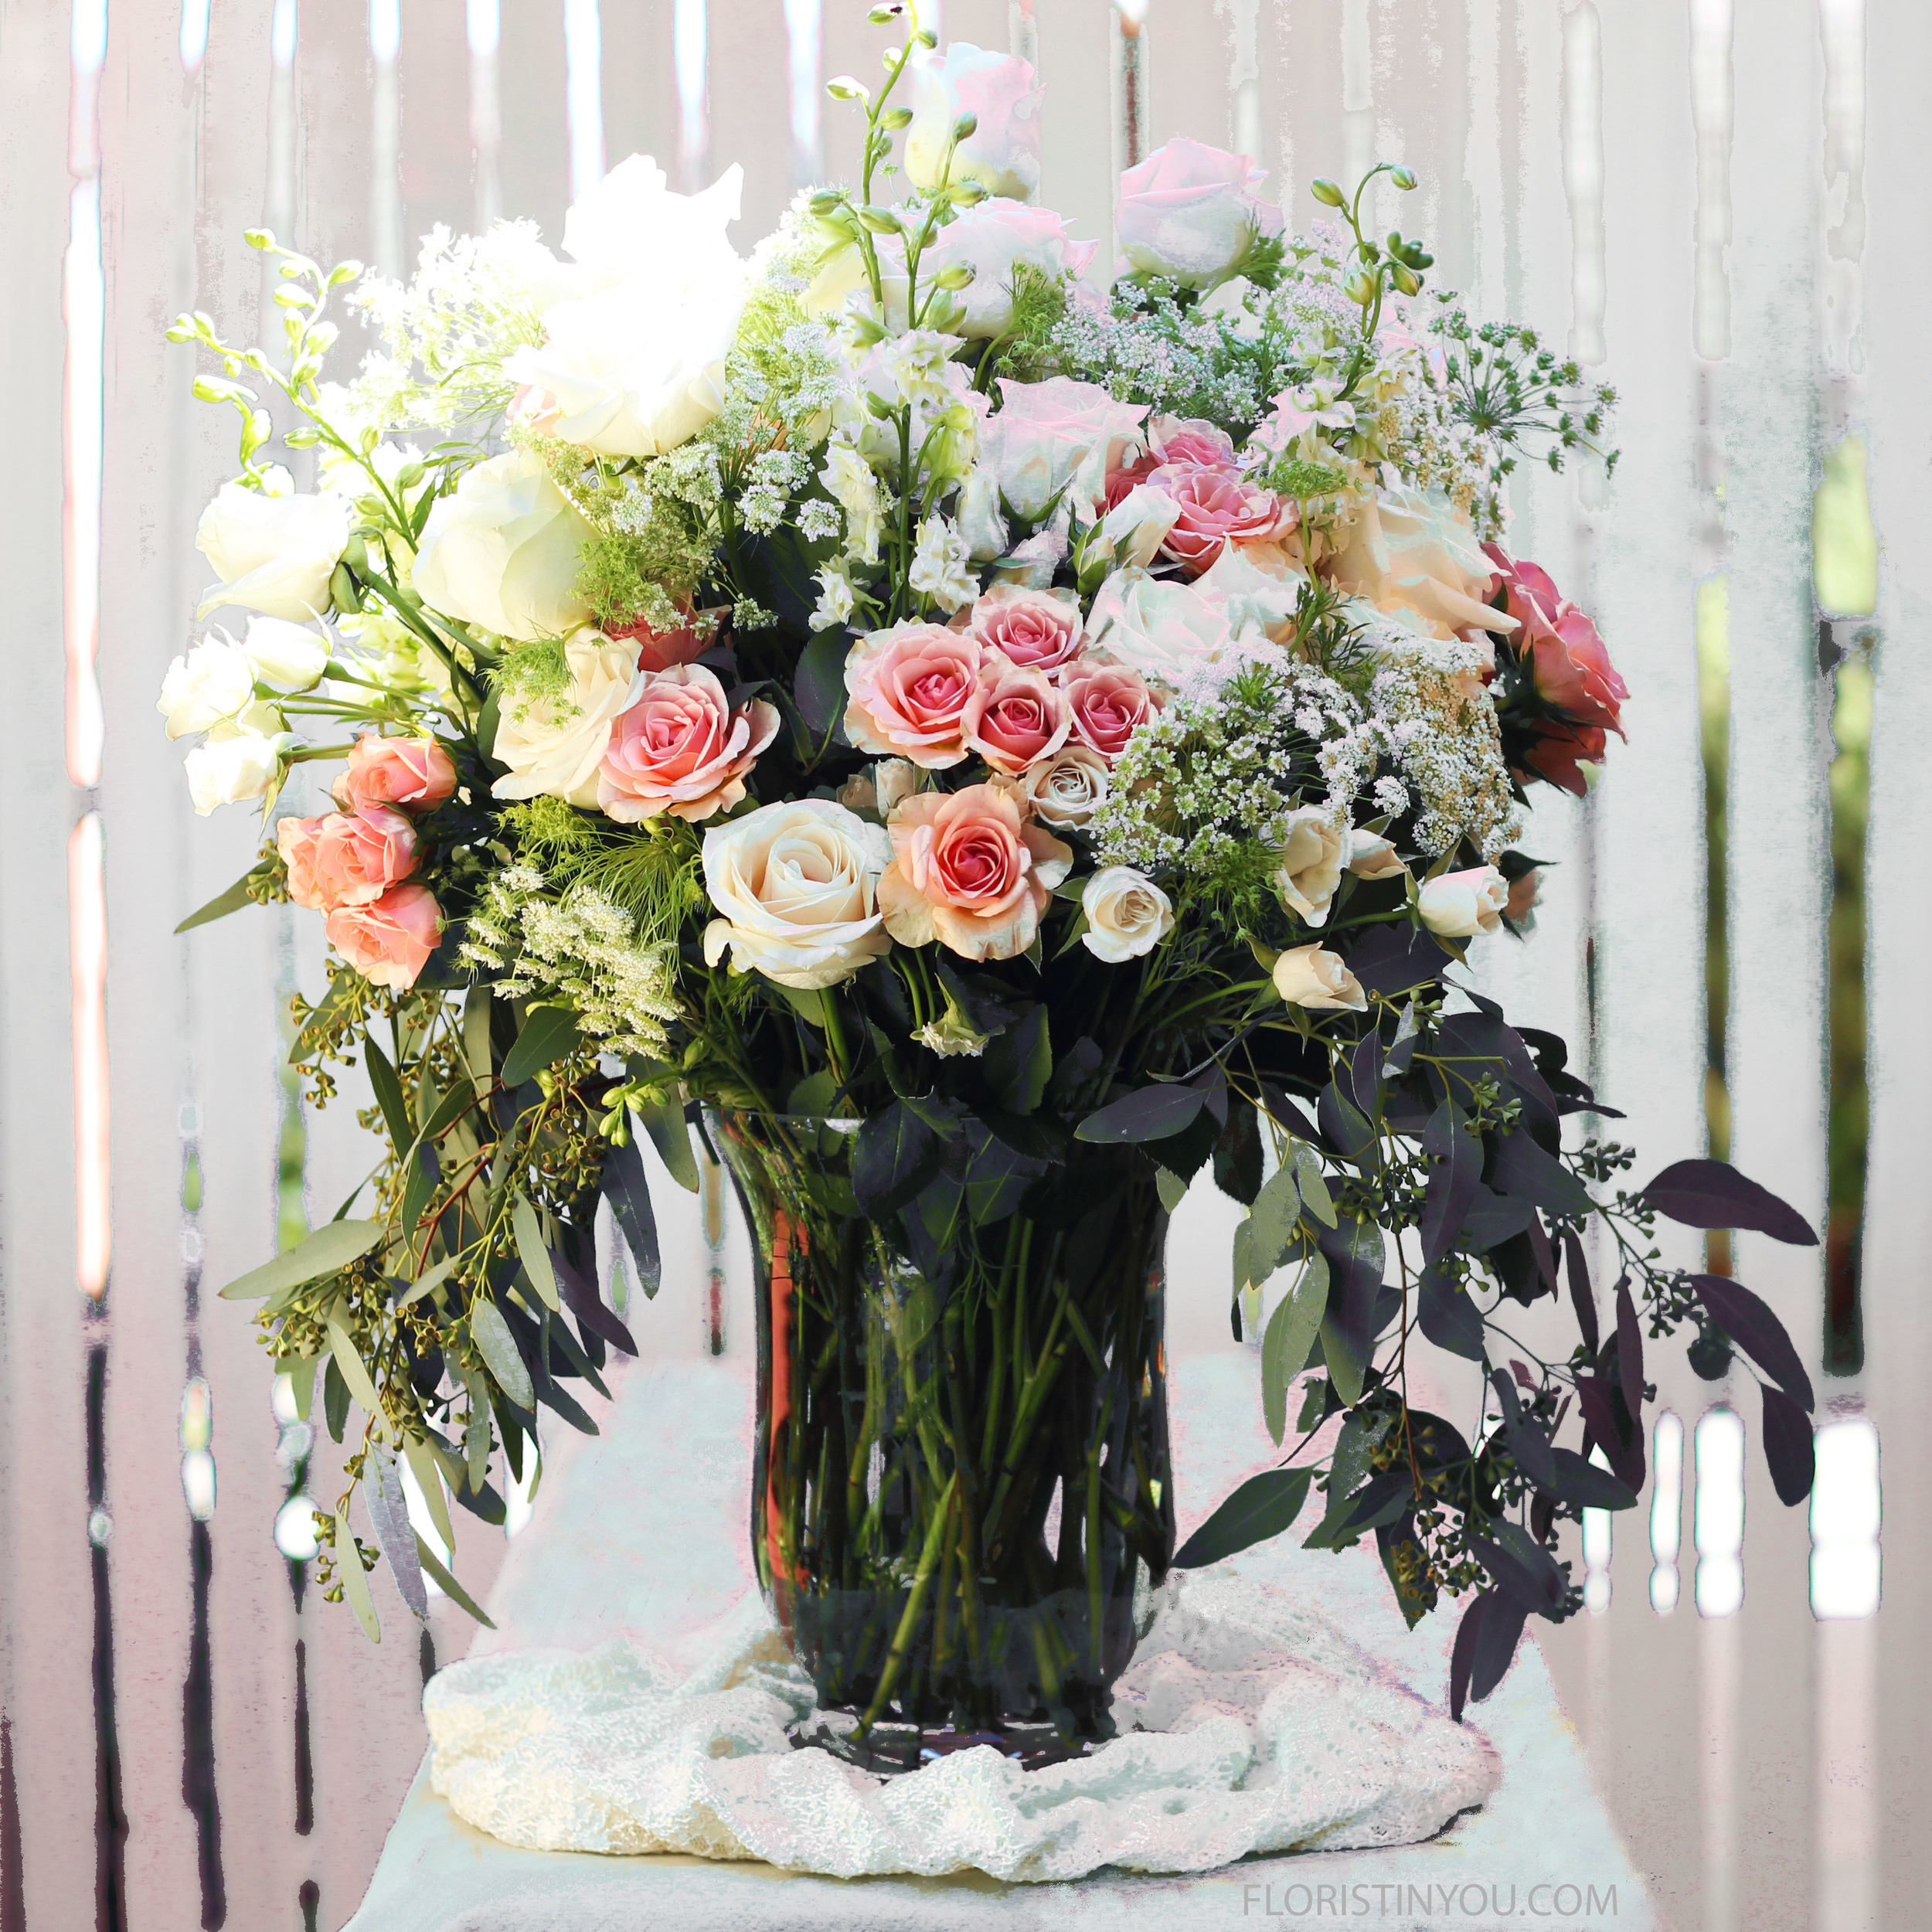 """Queen Anne's Lace and Roses                     Normal   0           false   false   false     EN-US   JA   X-NONE                                                                                                                                                                                                                                                                                                                                                                              /* Style Definitions */ table.MsoNormalTable {mso-style-name:""""Table Normal""""; mso-tstyle-rowband-size:0; mso-tstyle-colband-size:0; mso-style-noshow:yes; mso-style-priority:99; mso-style-parent:""""""""; mso-padding-alt:0in 5.4pt 0in 5.4pt; mso-para-margin:0in; mso-para-margin-bottom:.0001pt; mso-pagination:widow-orphan; font-size:12.0pt; font-family:Cambria; mso-ascii-font-family:Cambria; mso-ascii-theme-font:minor-latin; mso-hansi-font-family:Cambria; mso-hansi-theme-font:minor-latin;}"""